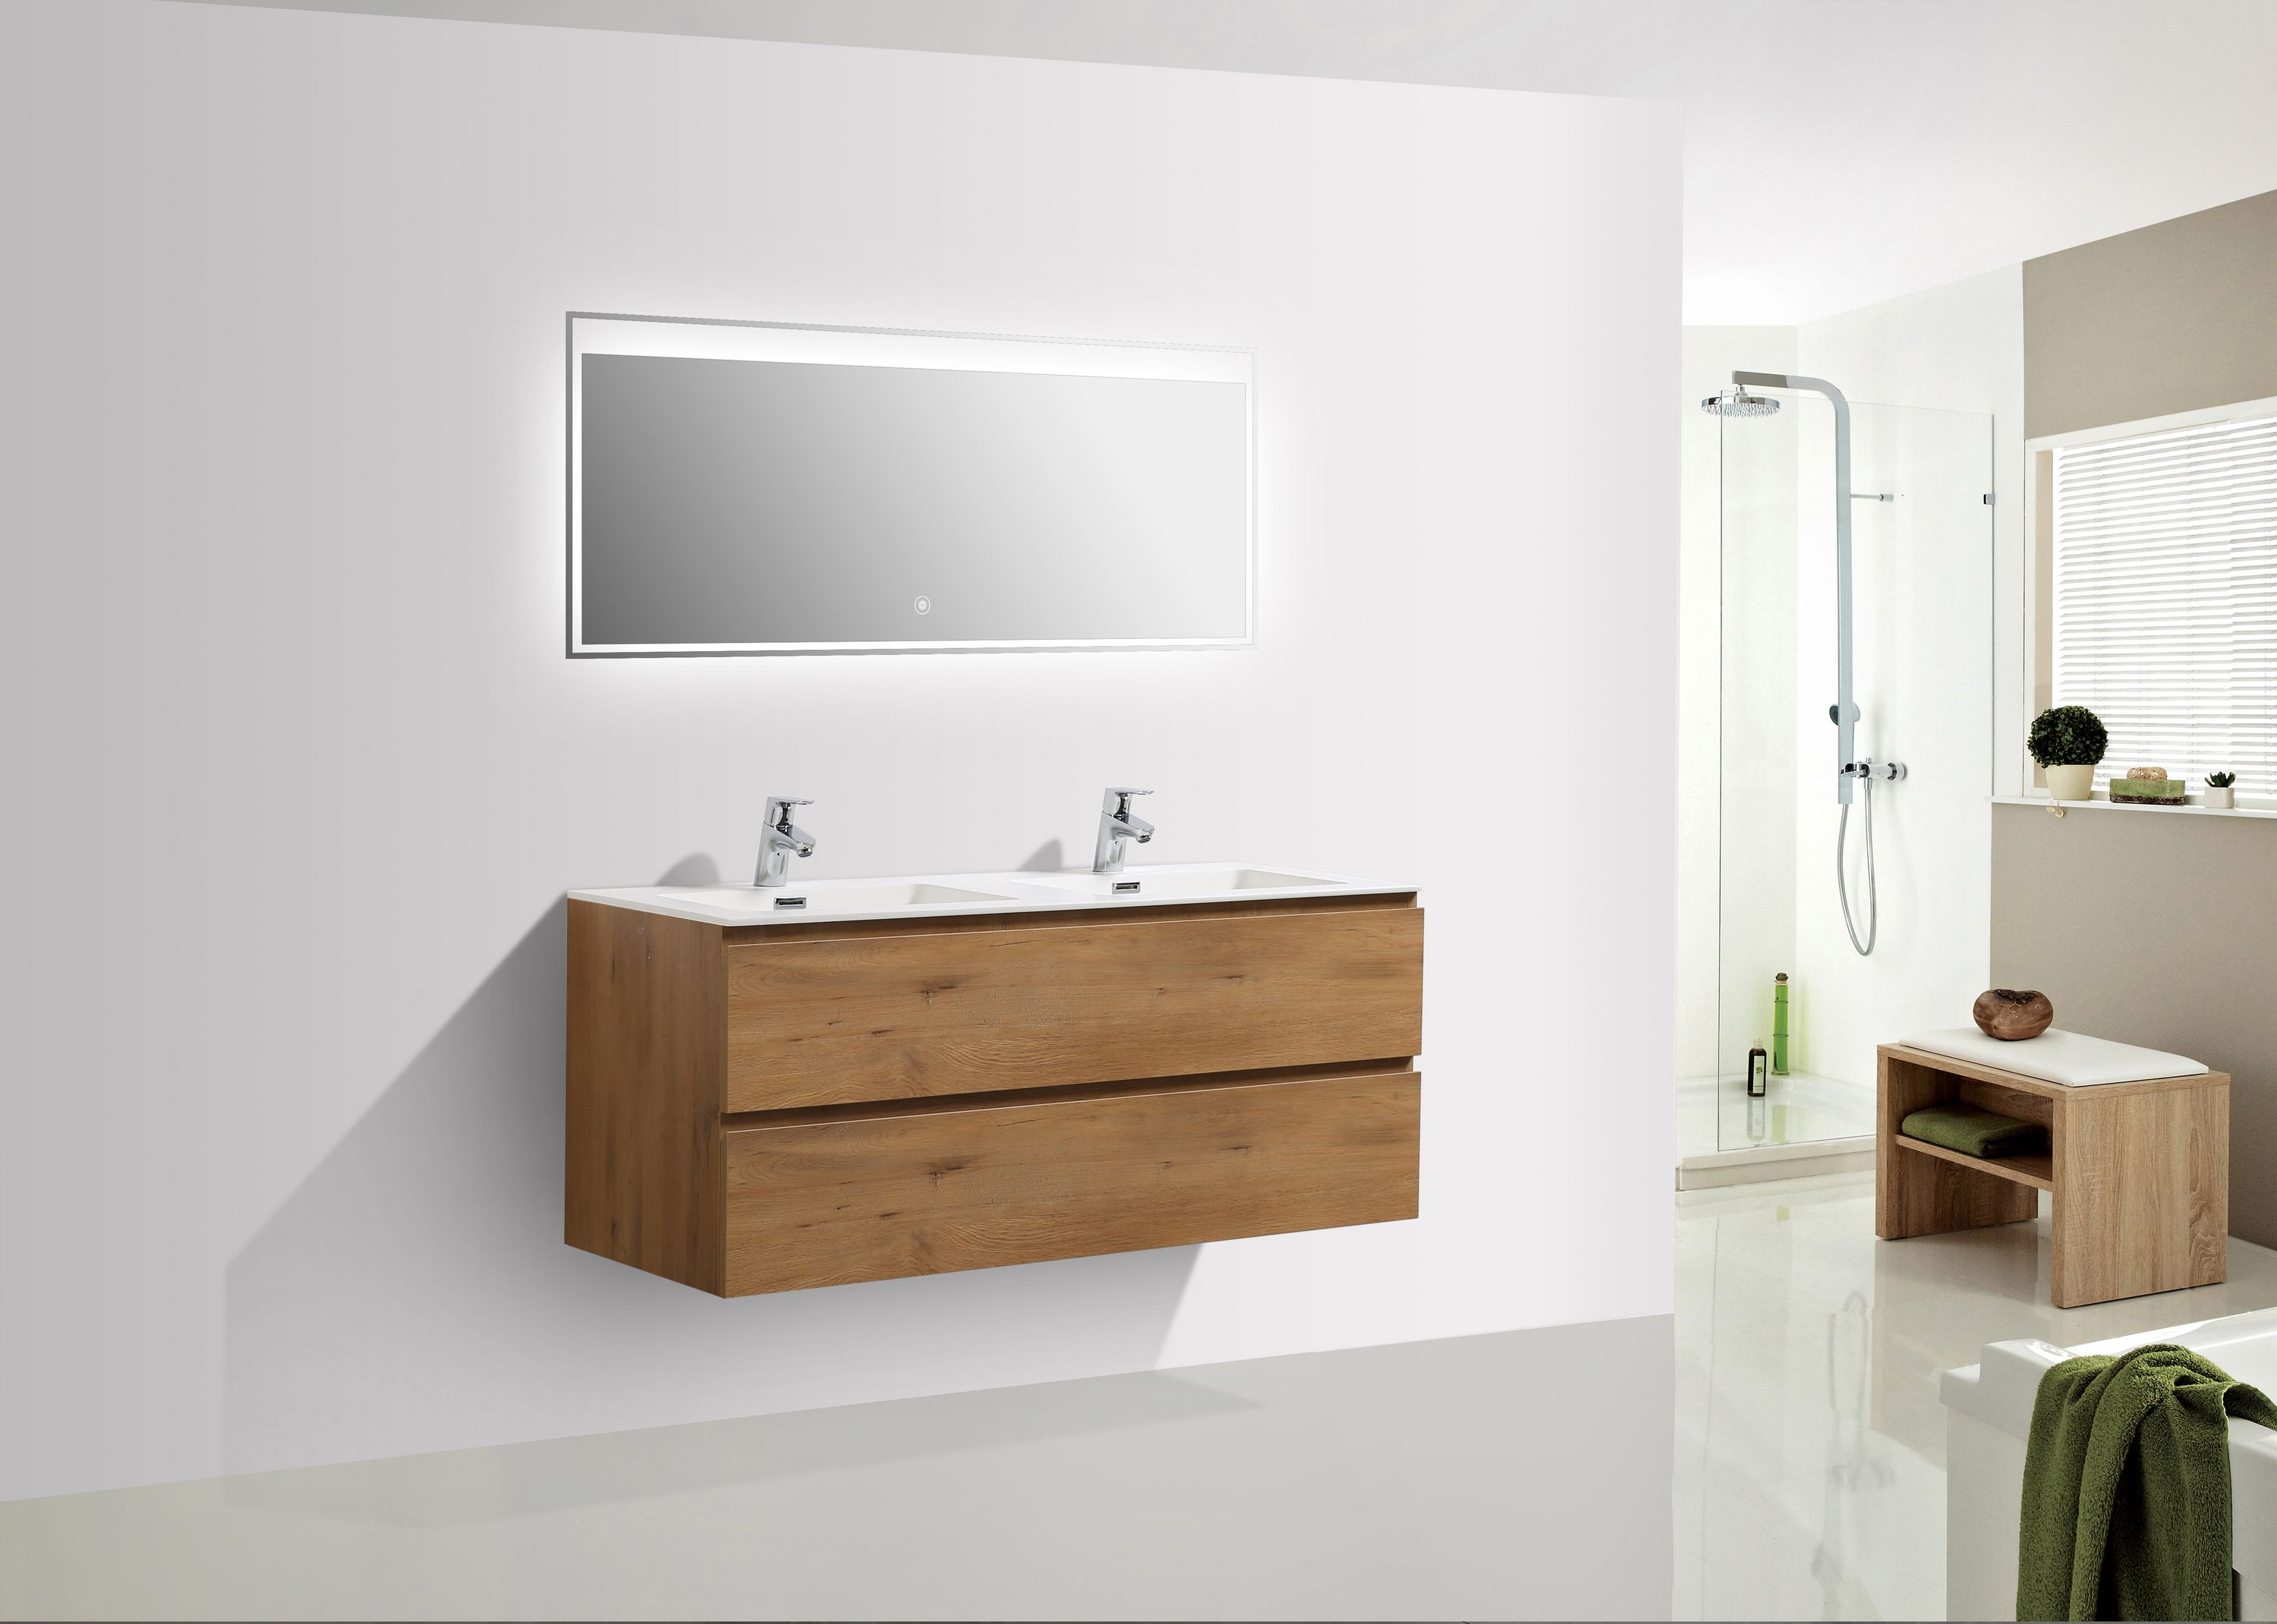 meuble salle de bain alice 1200 couleur ch ne miroir en option le monde de la salle de bain. Black Bedroom Furniture Sets. Home Design Ideas